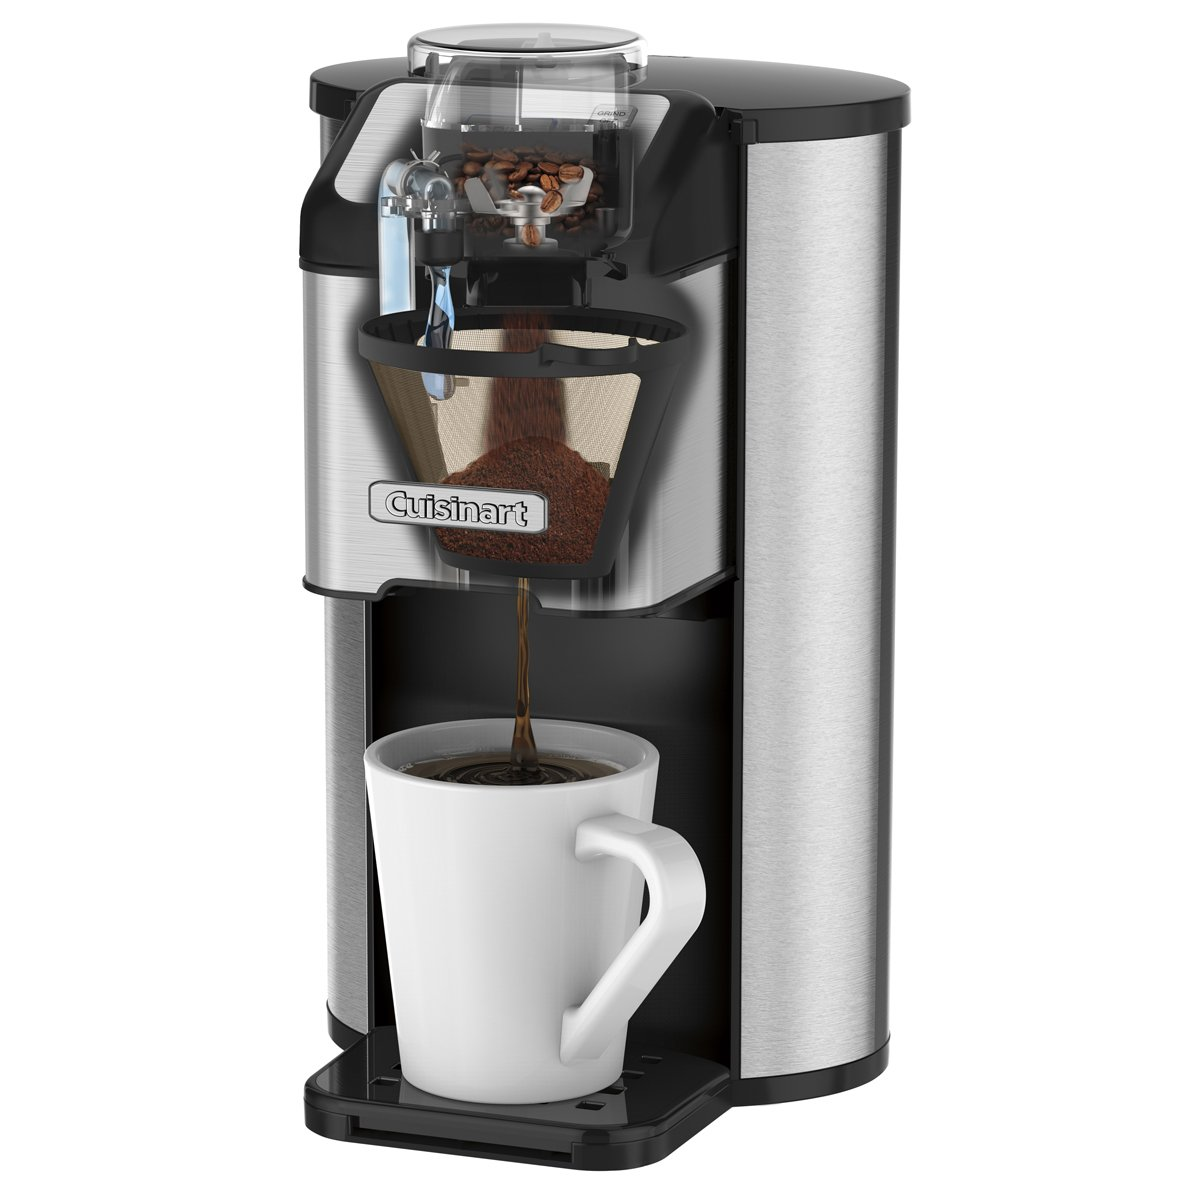 CUISINART Single Cup Grind and Brew, DGB-1C, Silver/Black